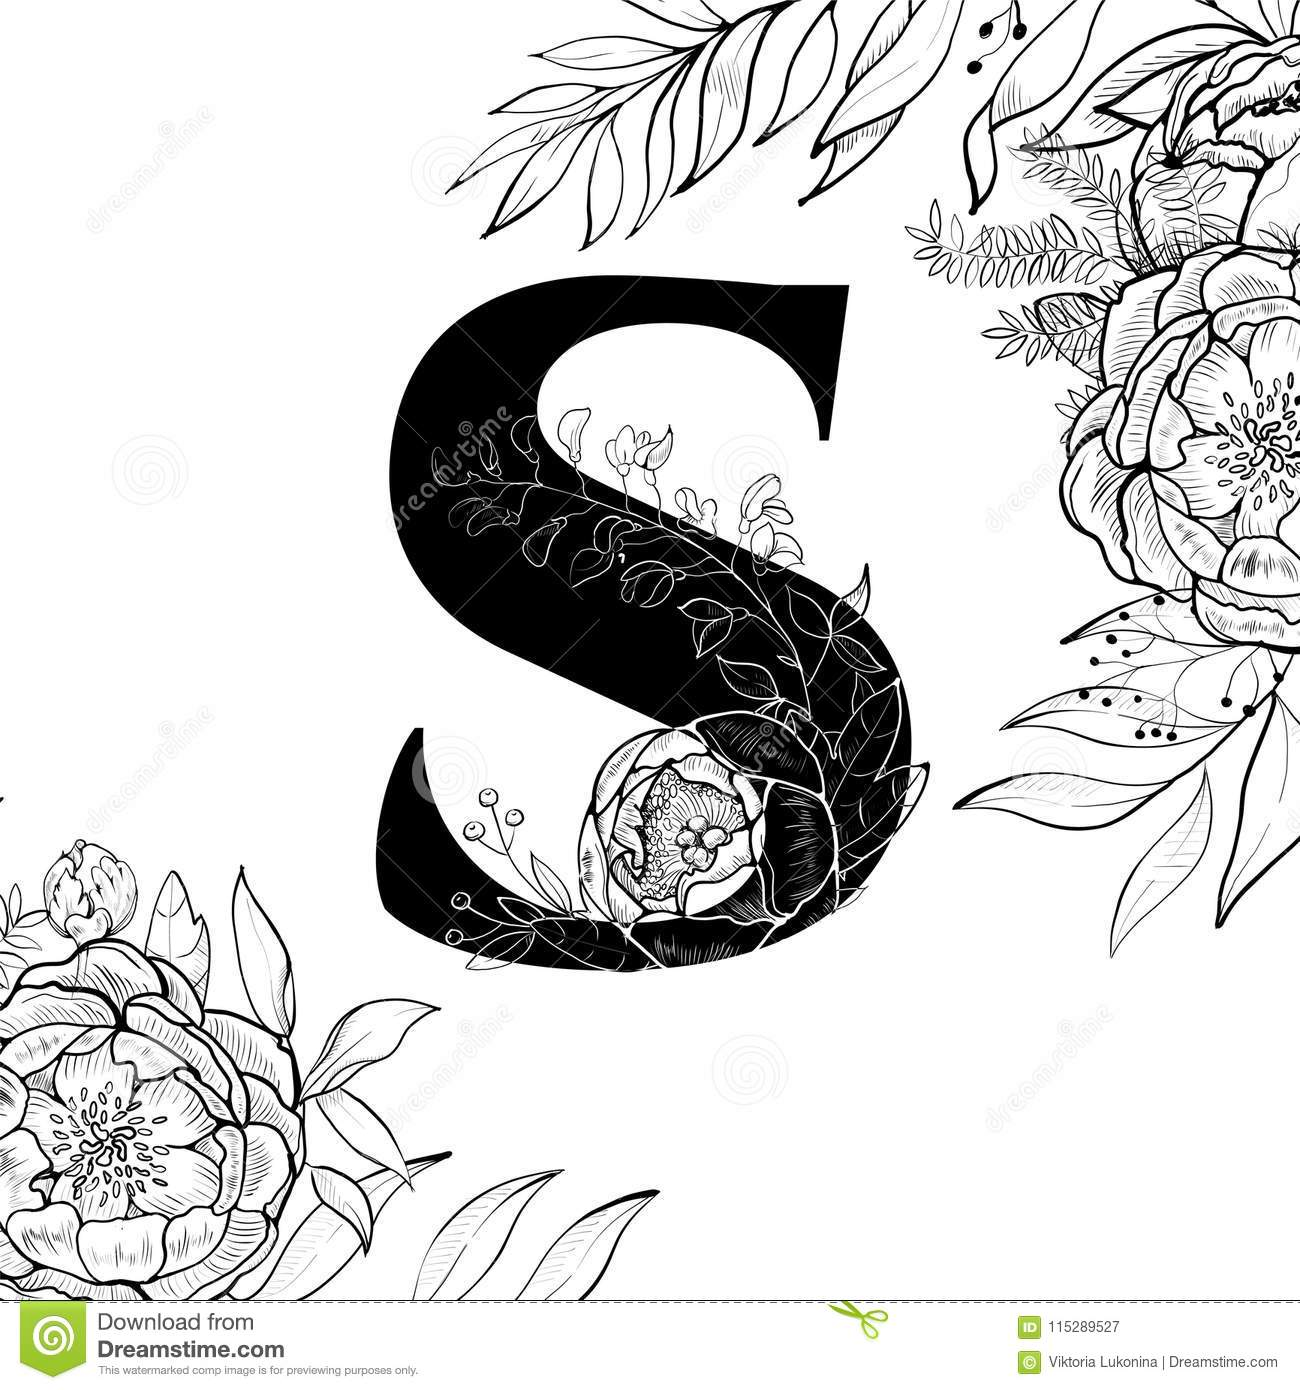 fancy letter s template  Flower Alphabet Letter S Pattern Stock Vector - Illustration ...